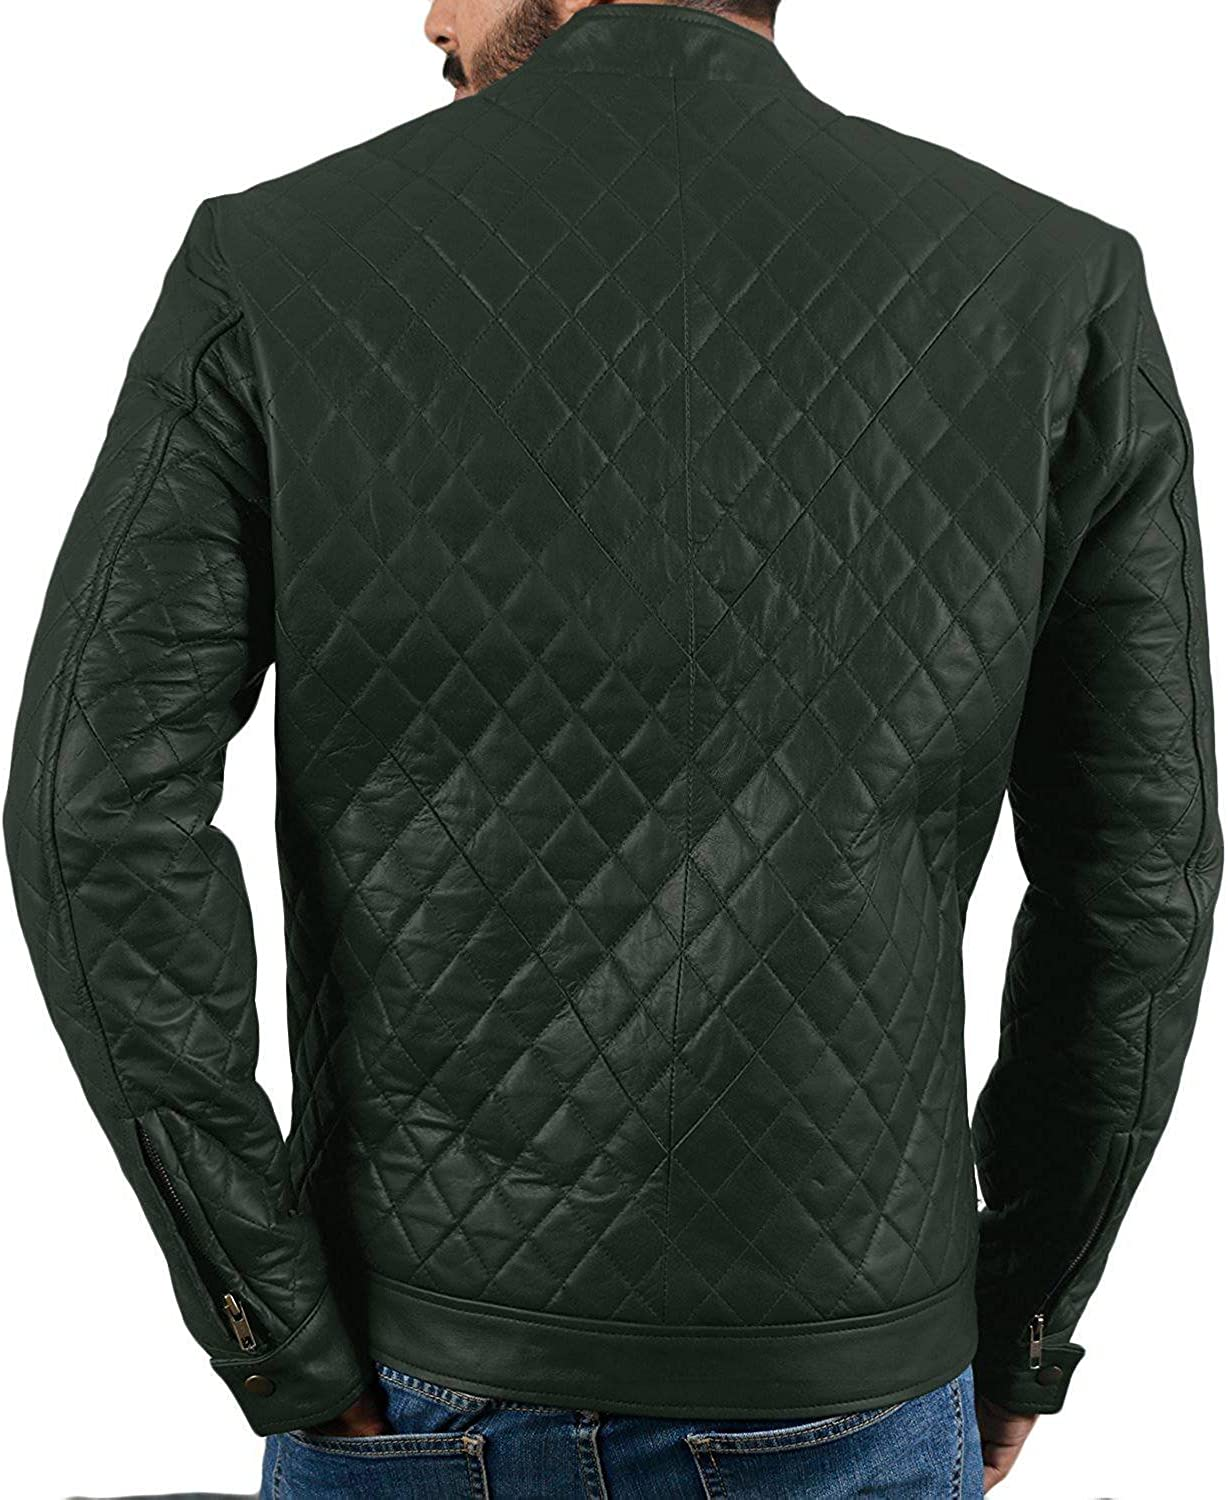 Laverapelle Mens Genuine Lambskin Leather Jacket Black, Fencing Jacket 1501547